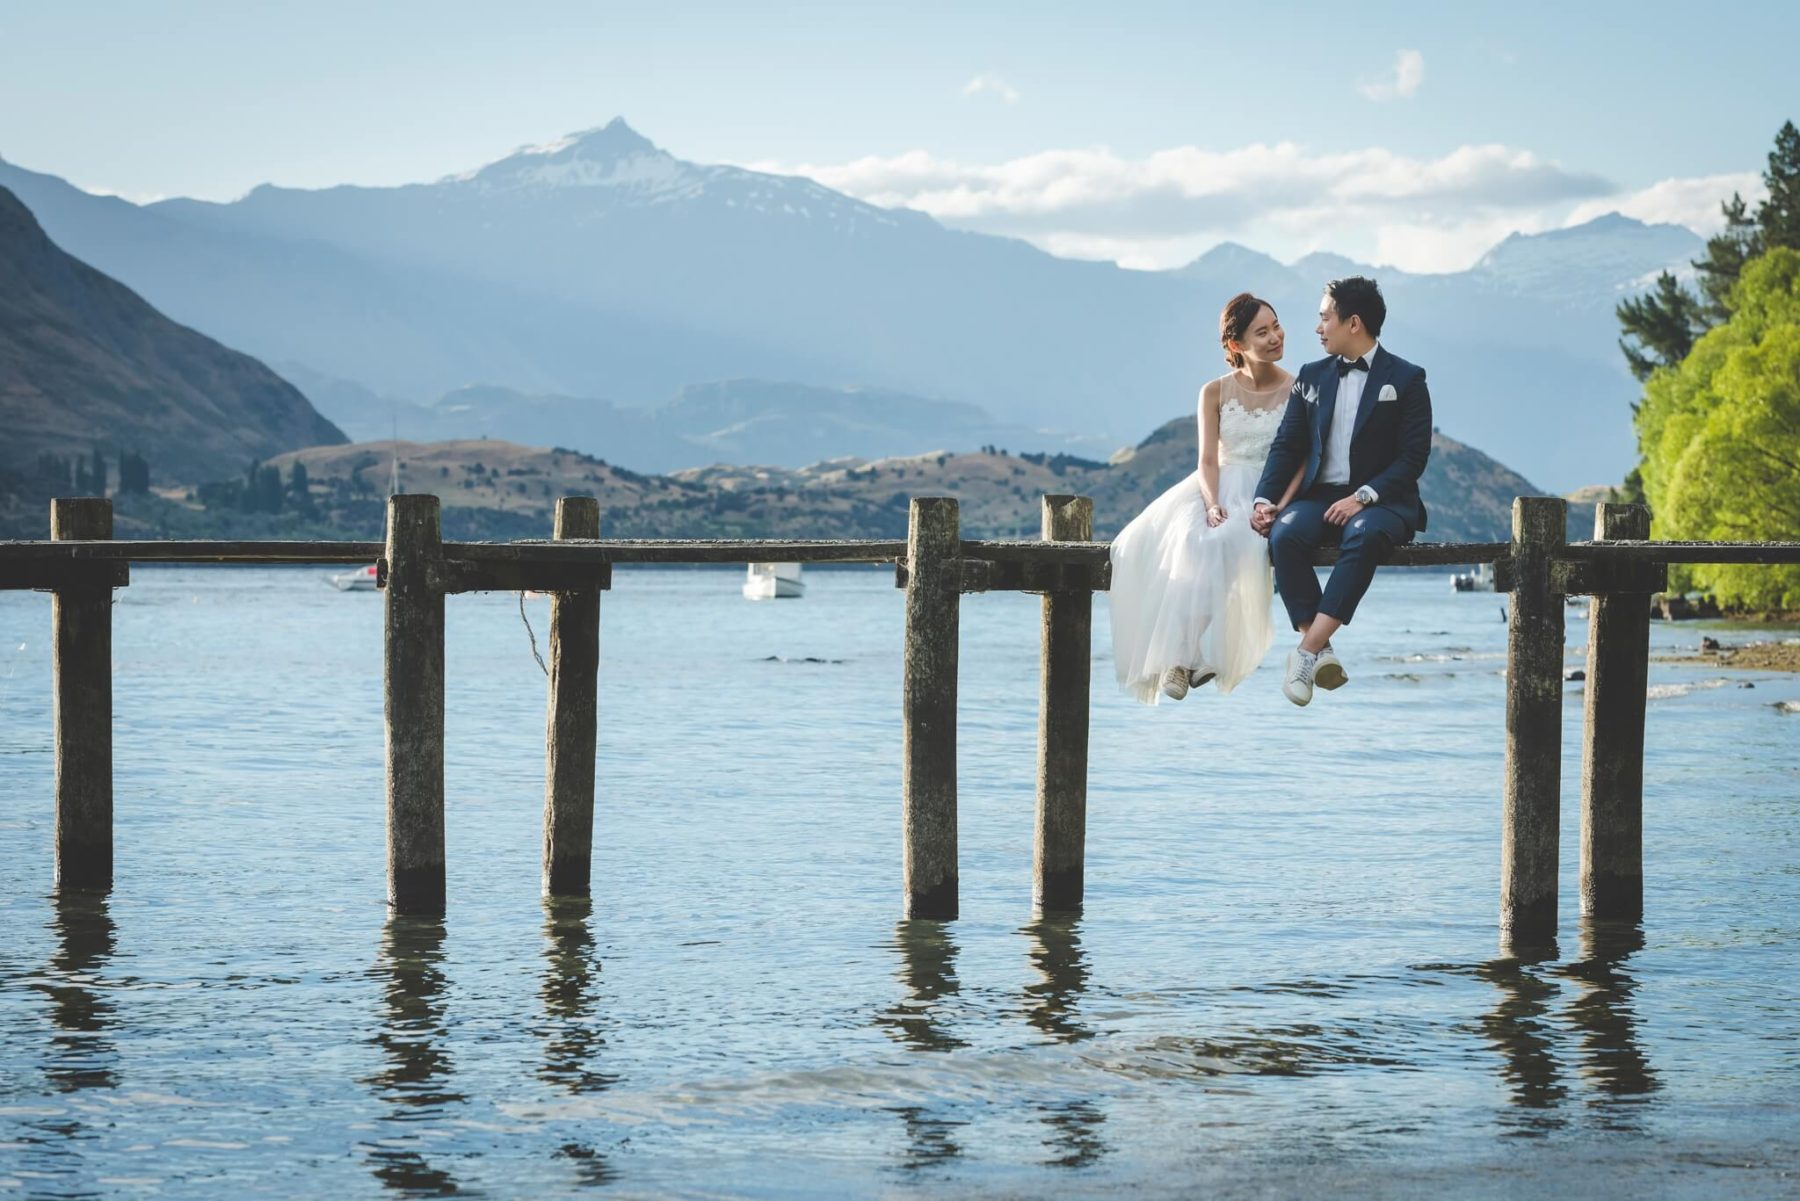 WANAKA WEDDING PHOTOGRAPHY – SHARON & JOEY